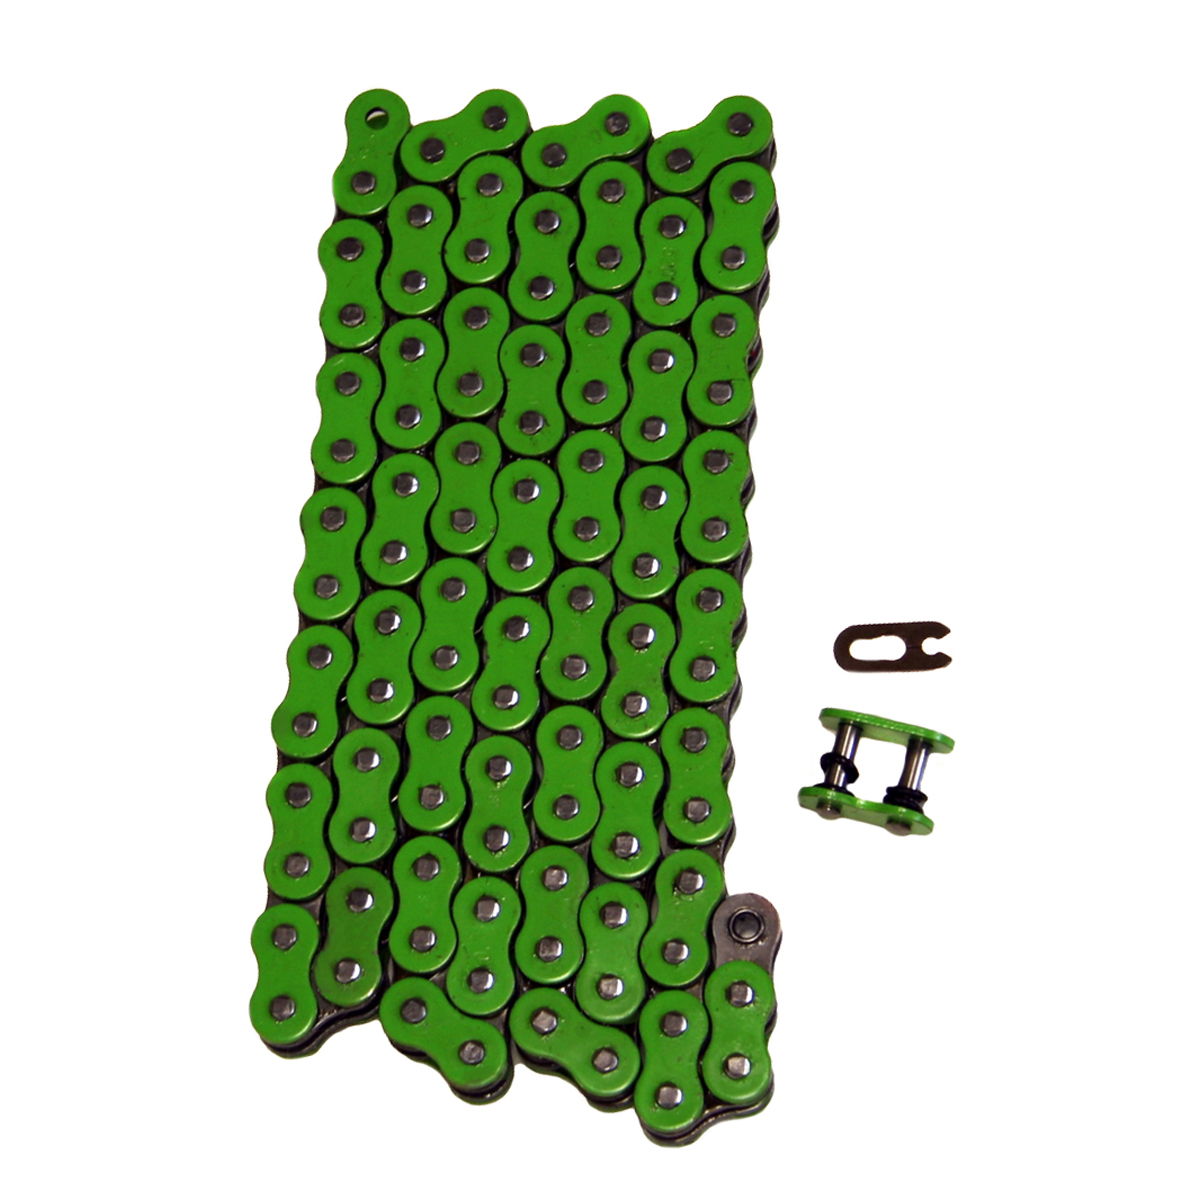 Factory Spec, FS-520-OGR, Heavy Duty Green O Ring Drive Chain 520x92 ORing 520 Pitch x 92 Links O-Ring